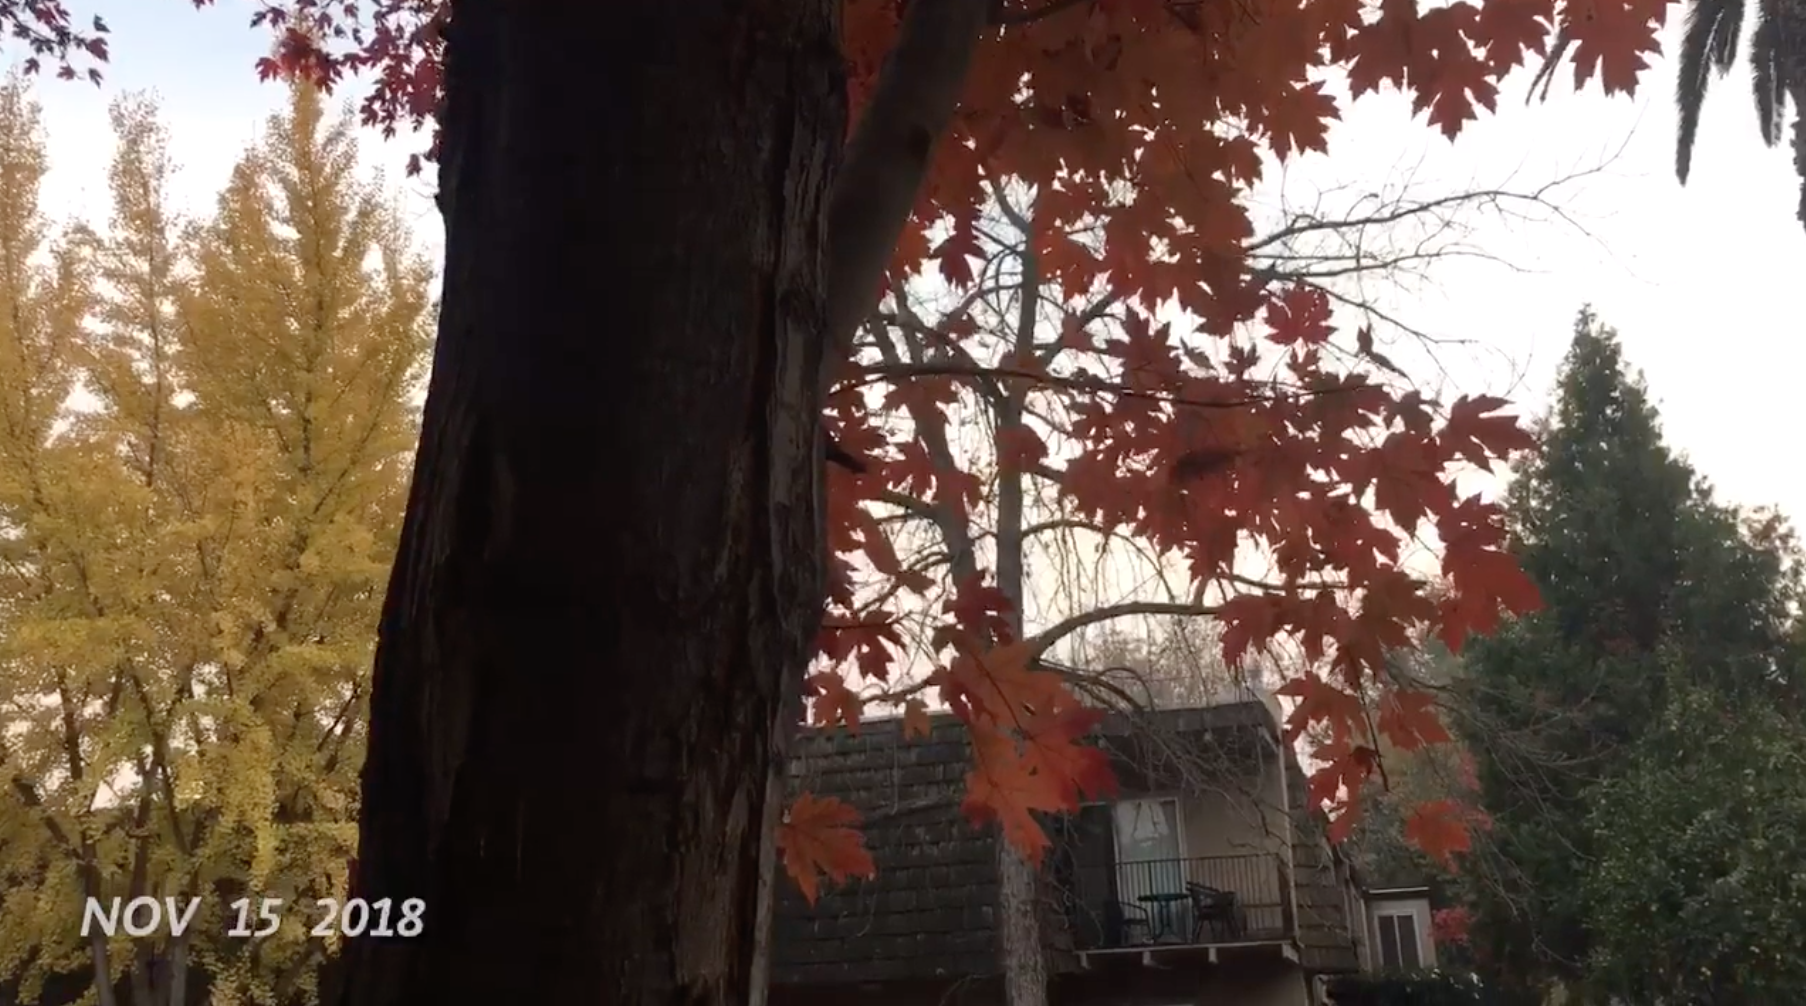 Screen Shot 2018-12-06 at 11.10.55 PM.png